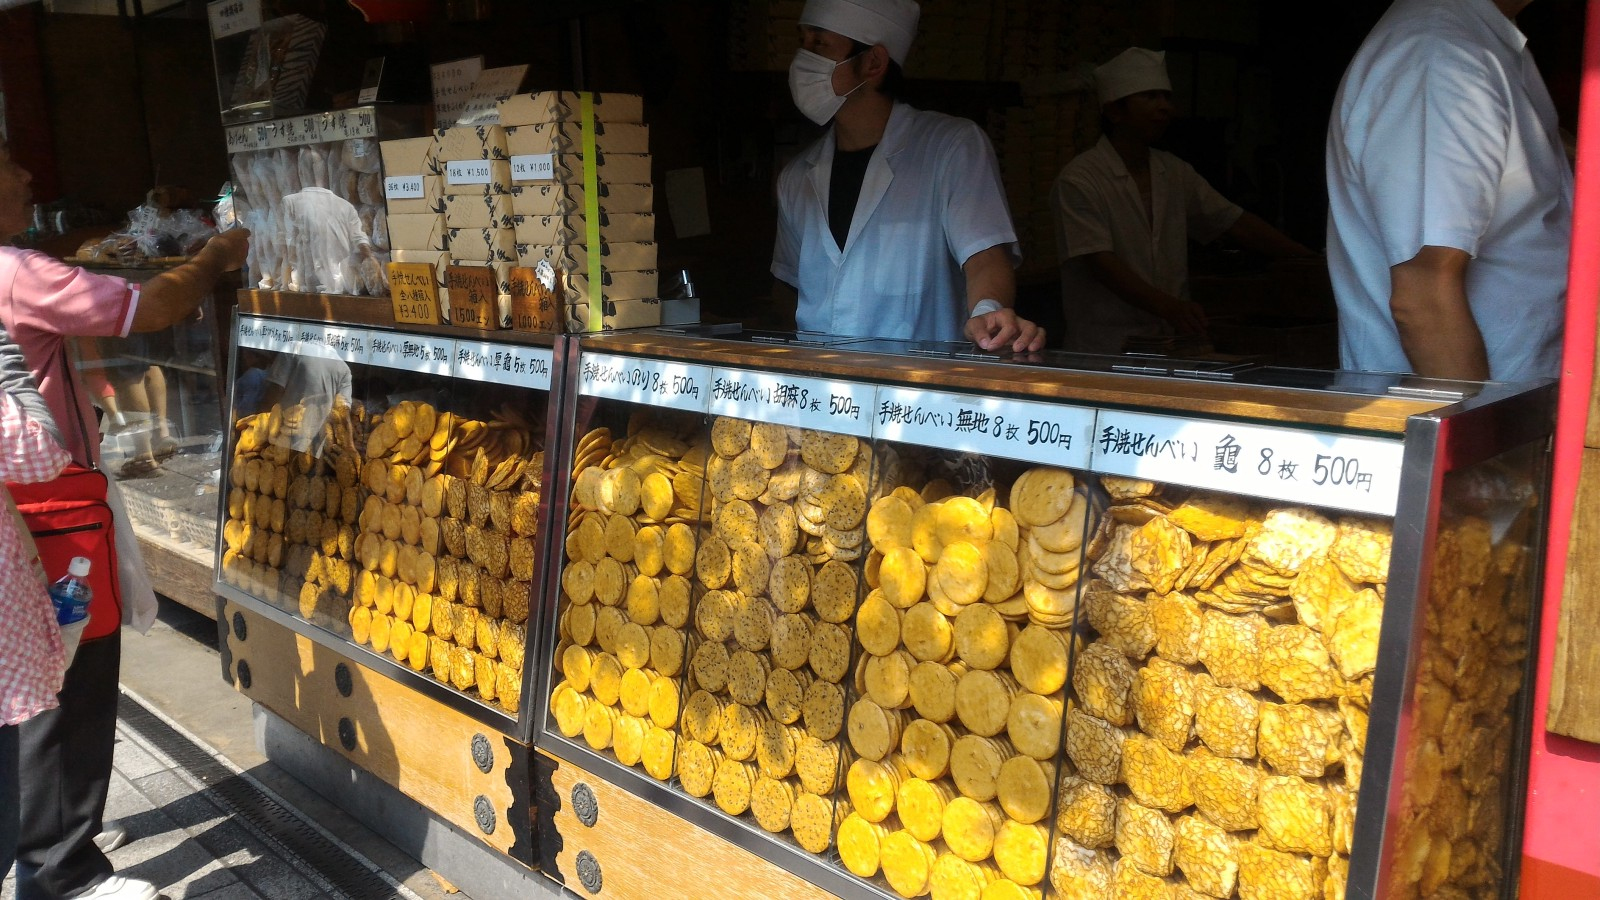 Hand-made rice crackers sold at Nakamise Street